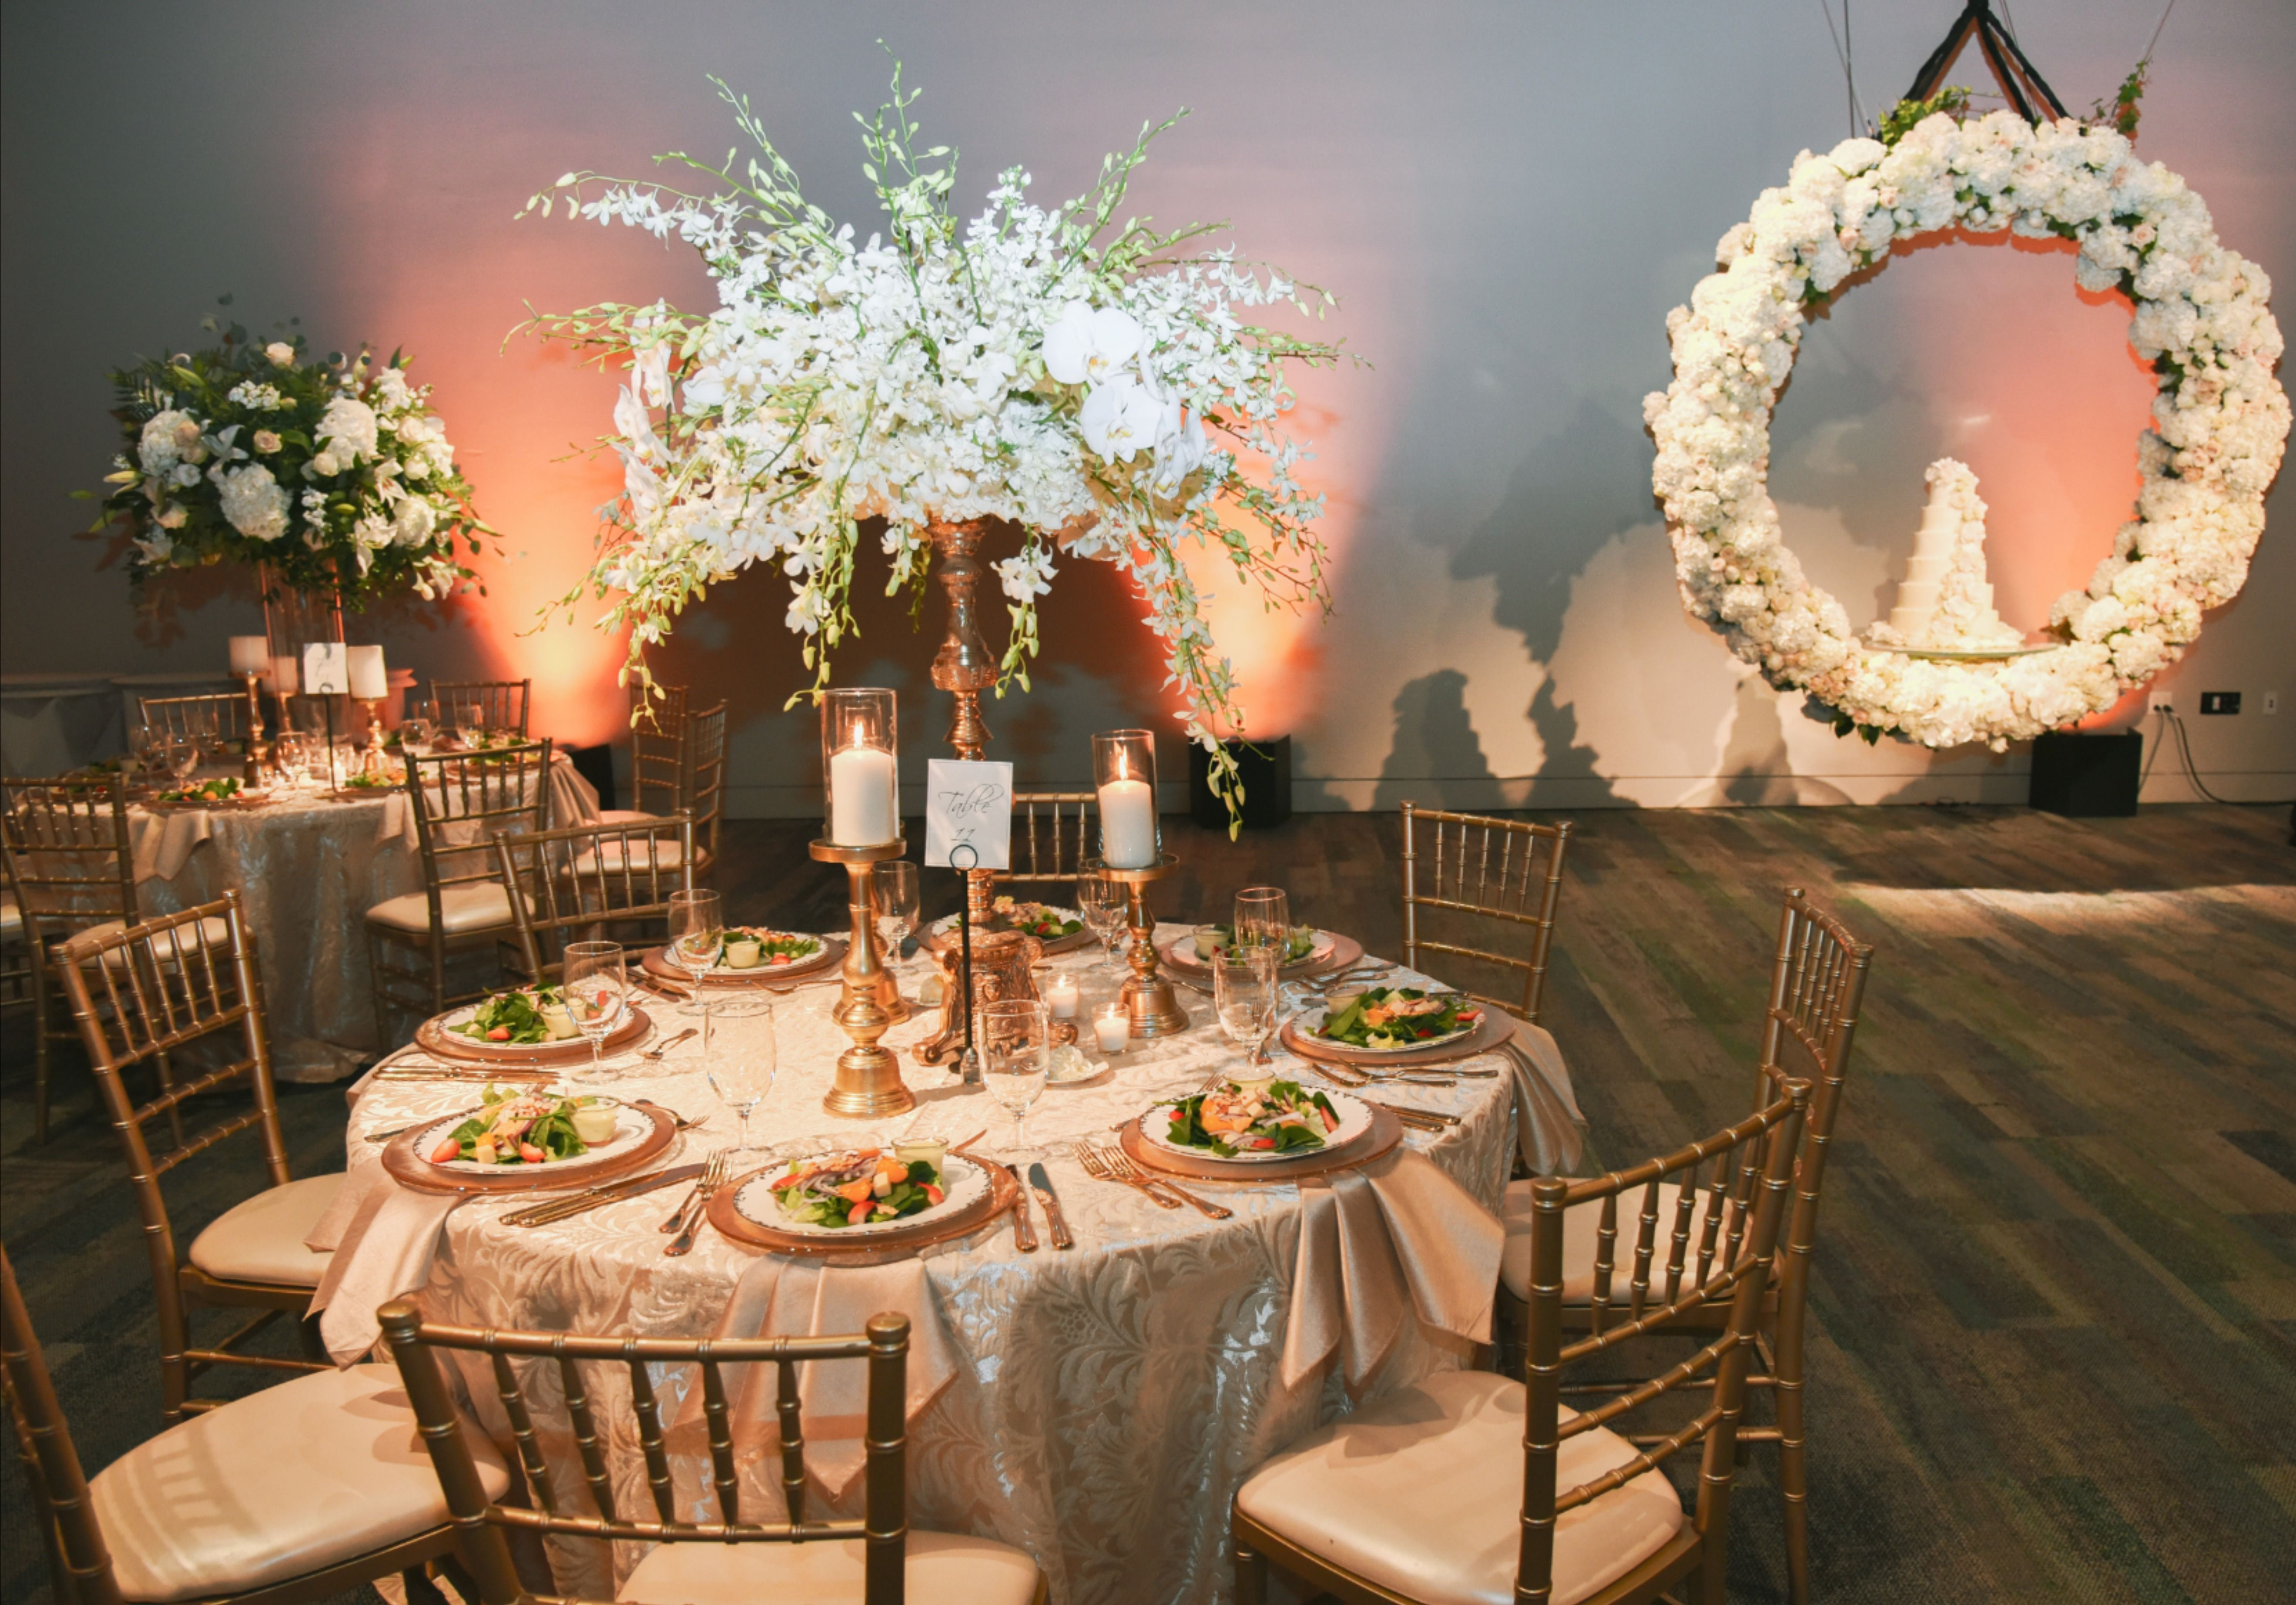 Wedding Reception Dream Wedding Wedding Decor Wedding Planner Texas Weddings In 2020 Event Design Tent Rentals Wedding Decorations